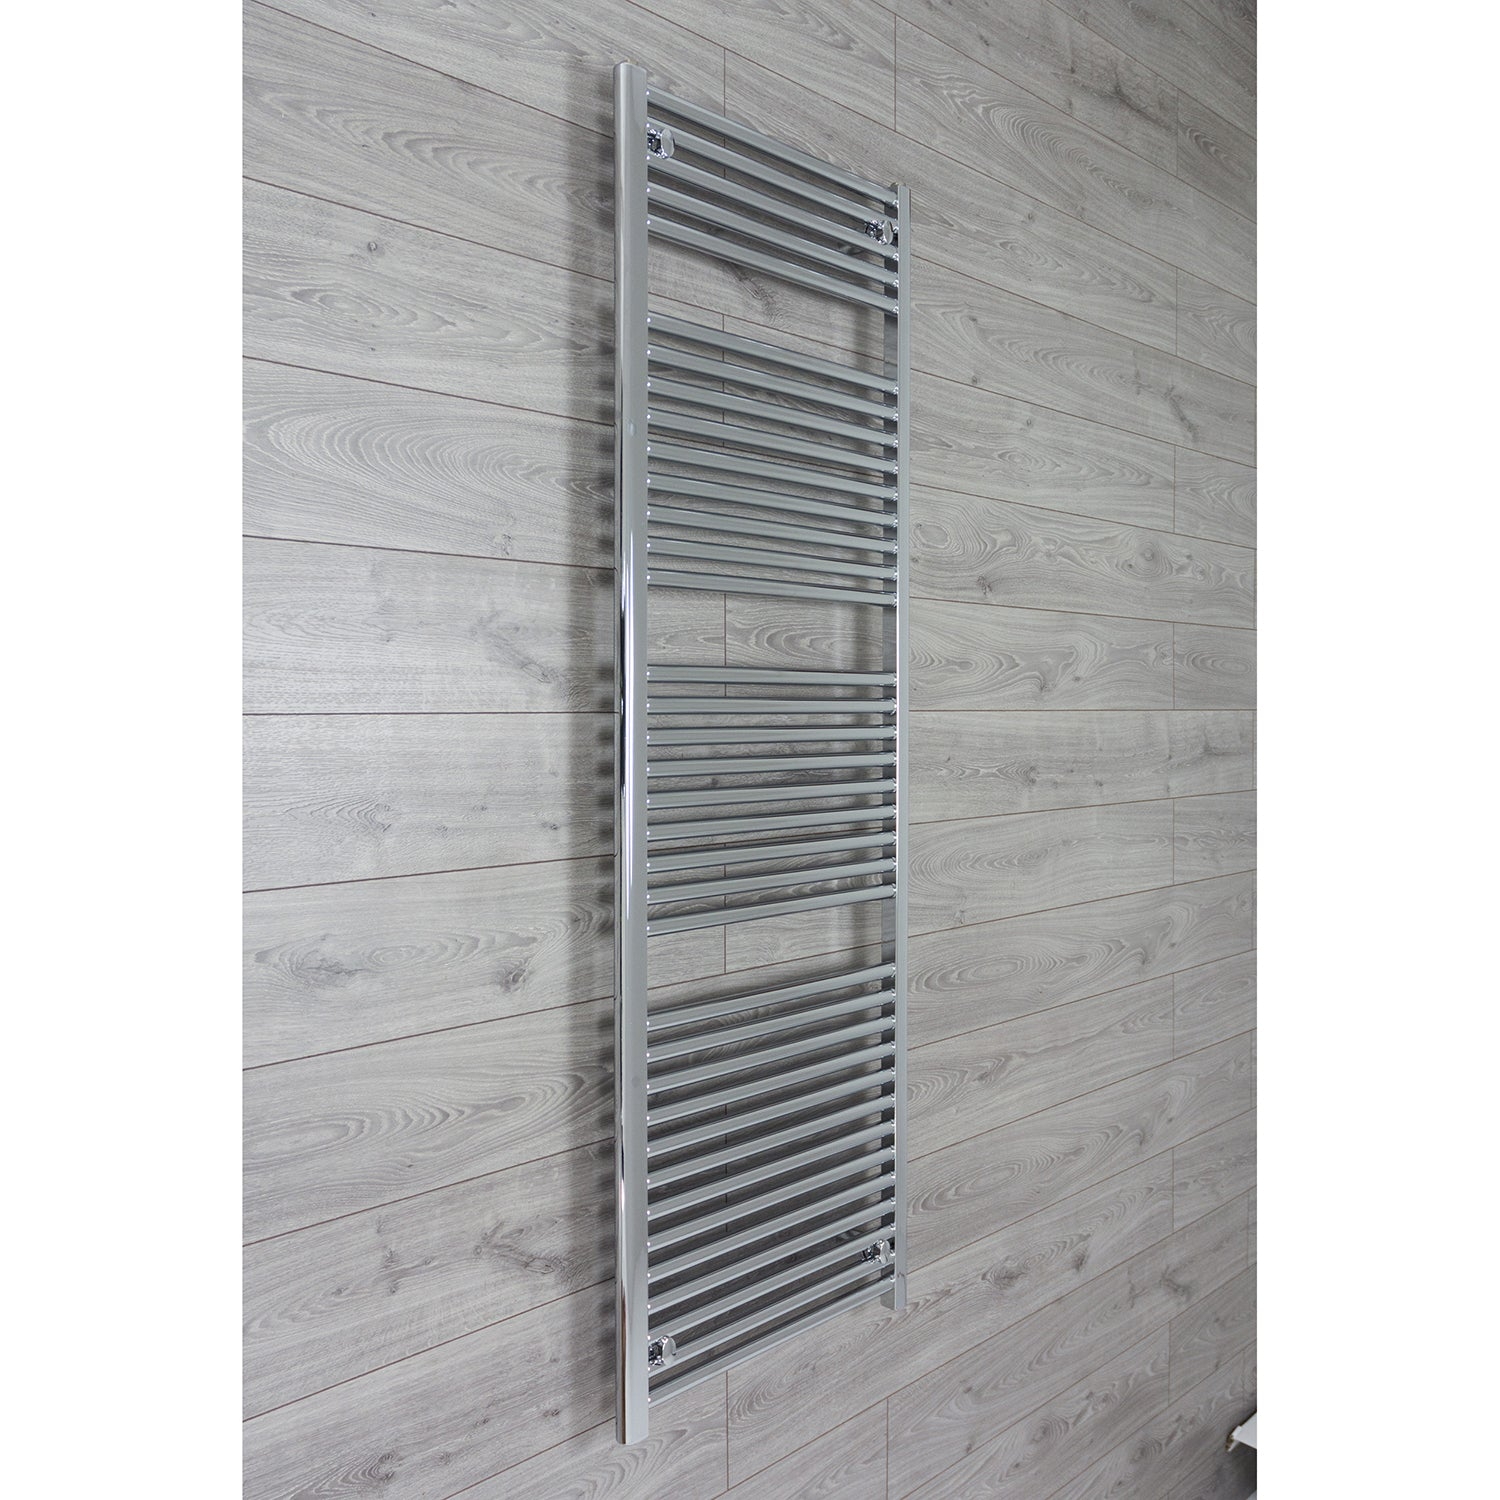 600mm Wide 1744mm High 25mm Tubes Curved Chrome Heated Towel Rail Radiator HTR,Towel Rail Only